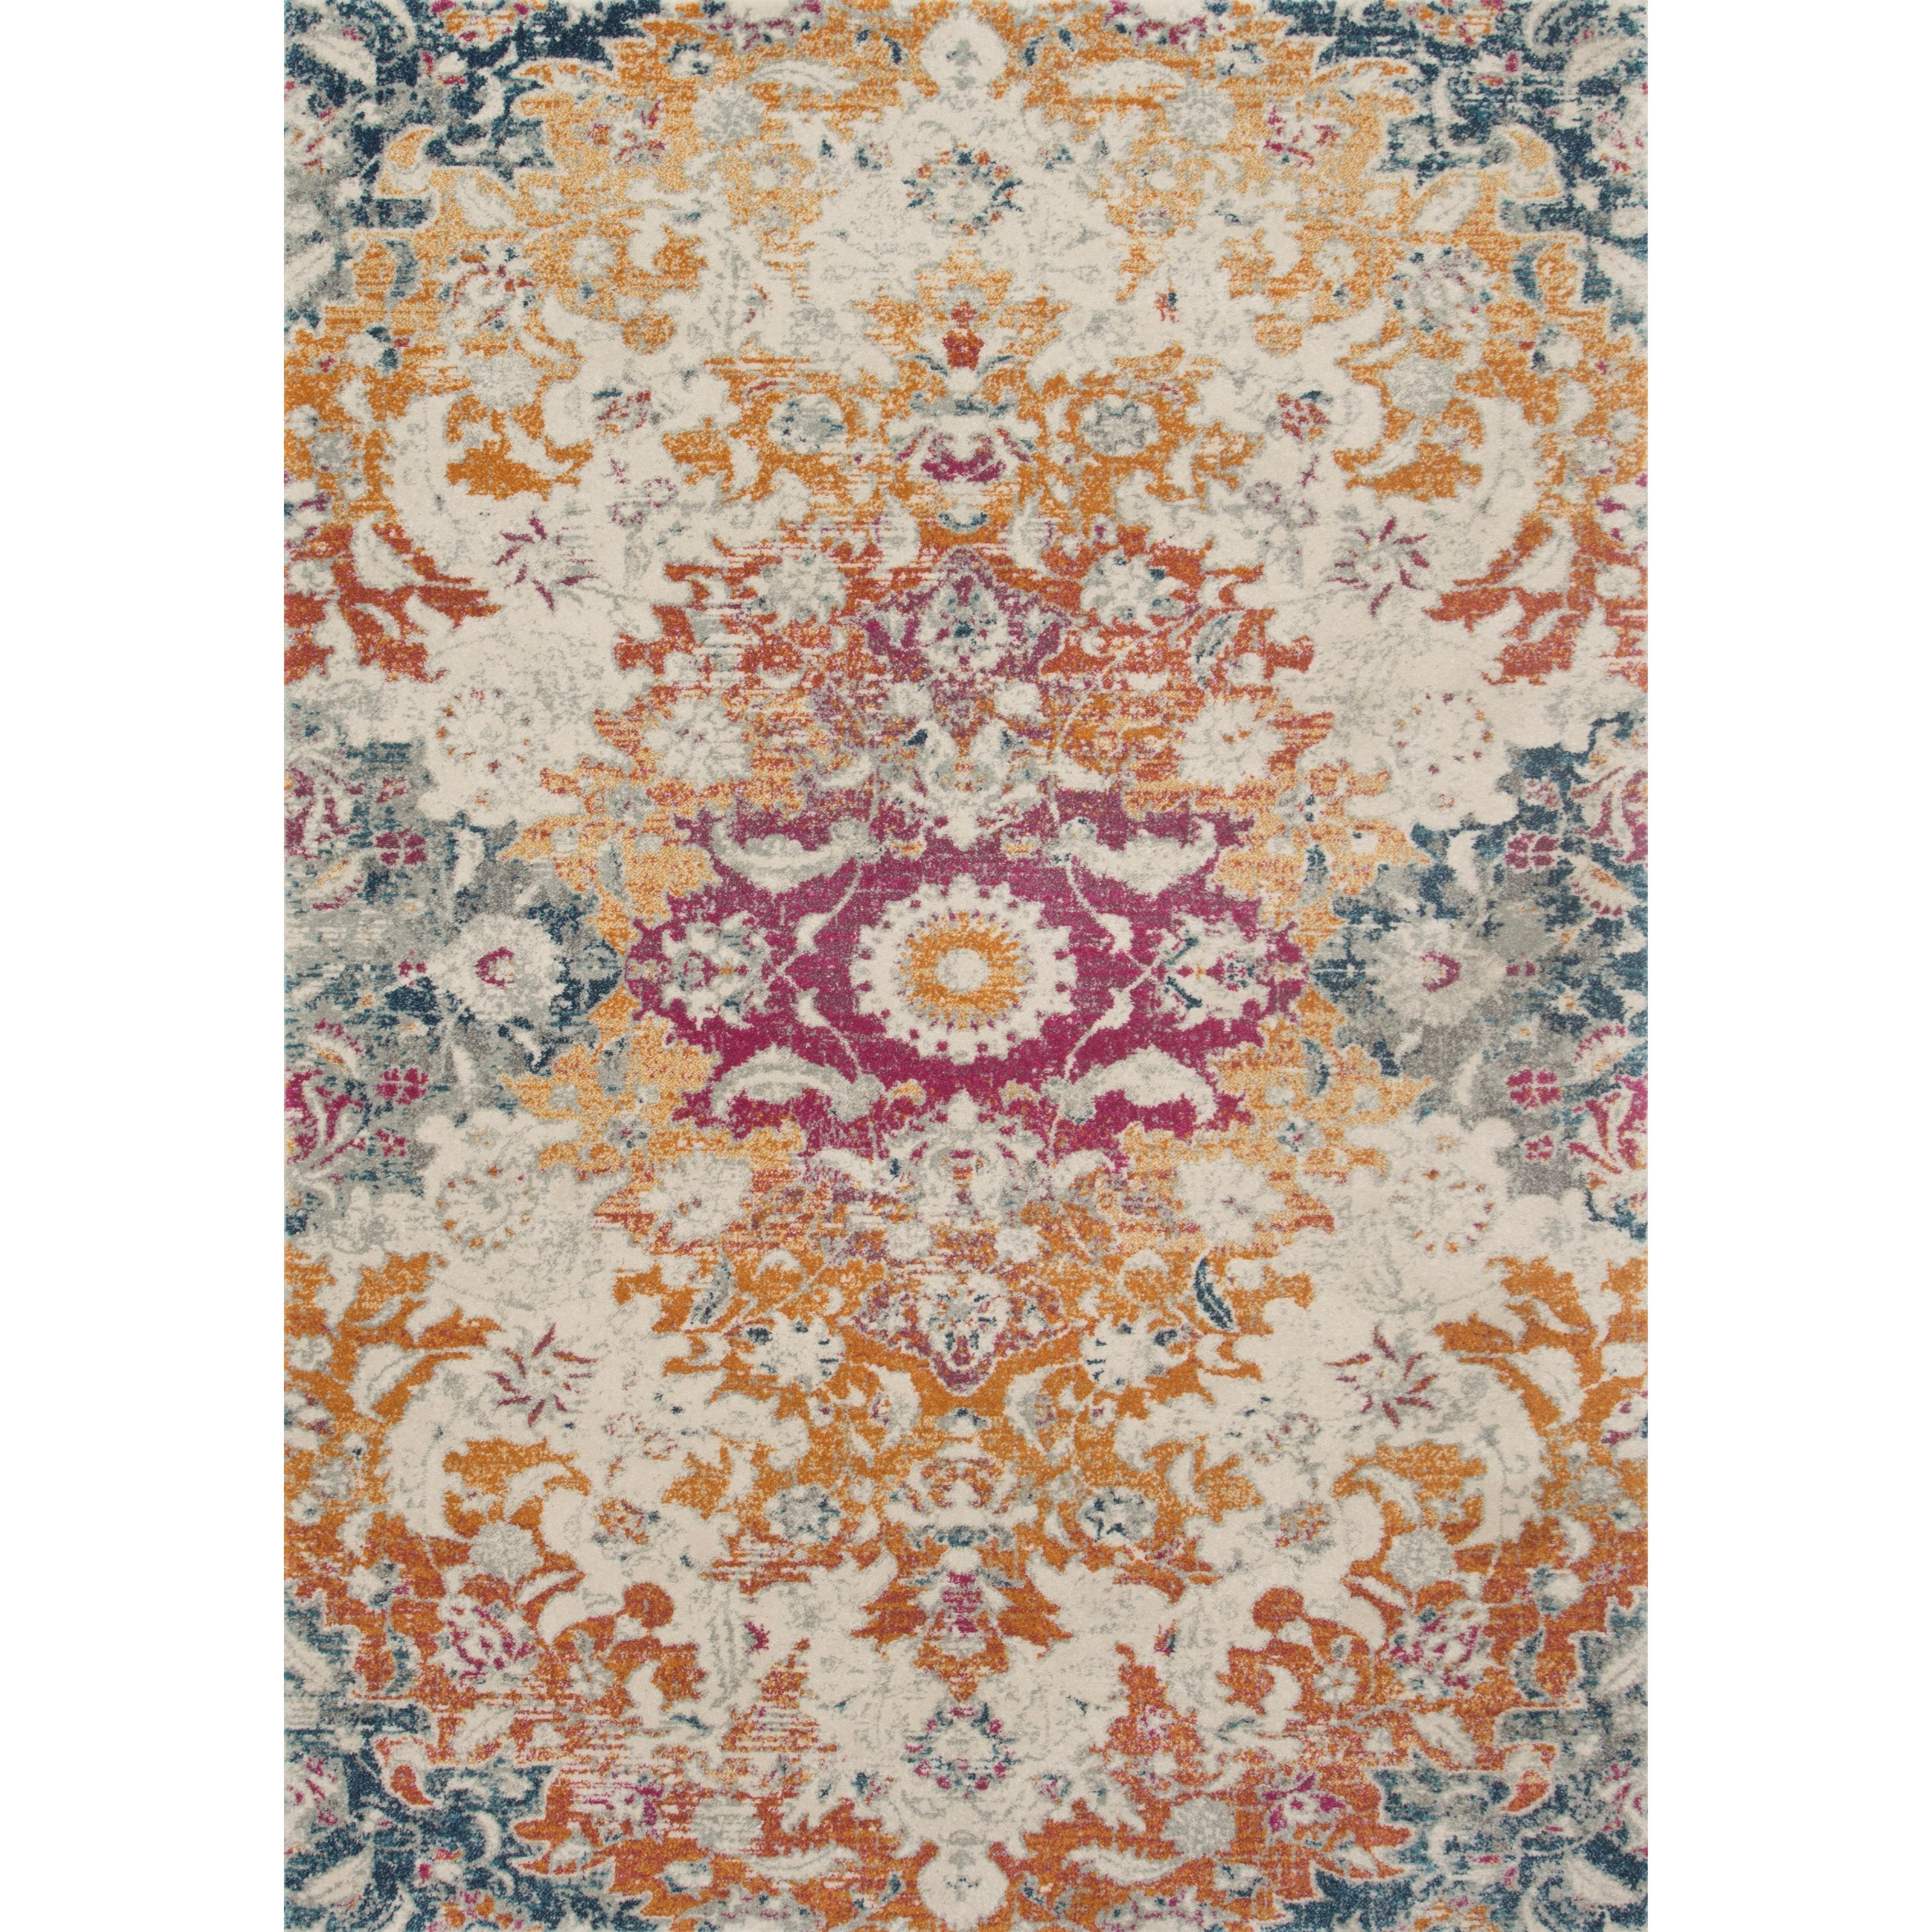 """Zehla 2'2"""" x 3'9"""" Ivory / Fiesta Rug by Loloi Rugs at Virginia Furniture Market"""